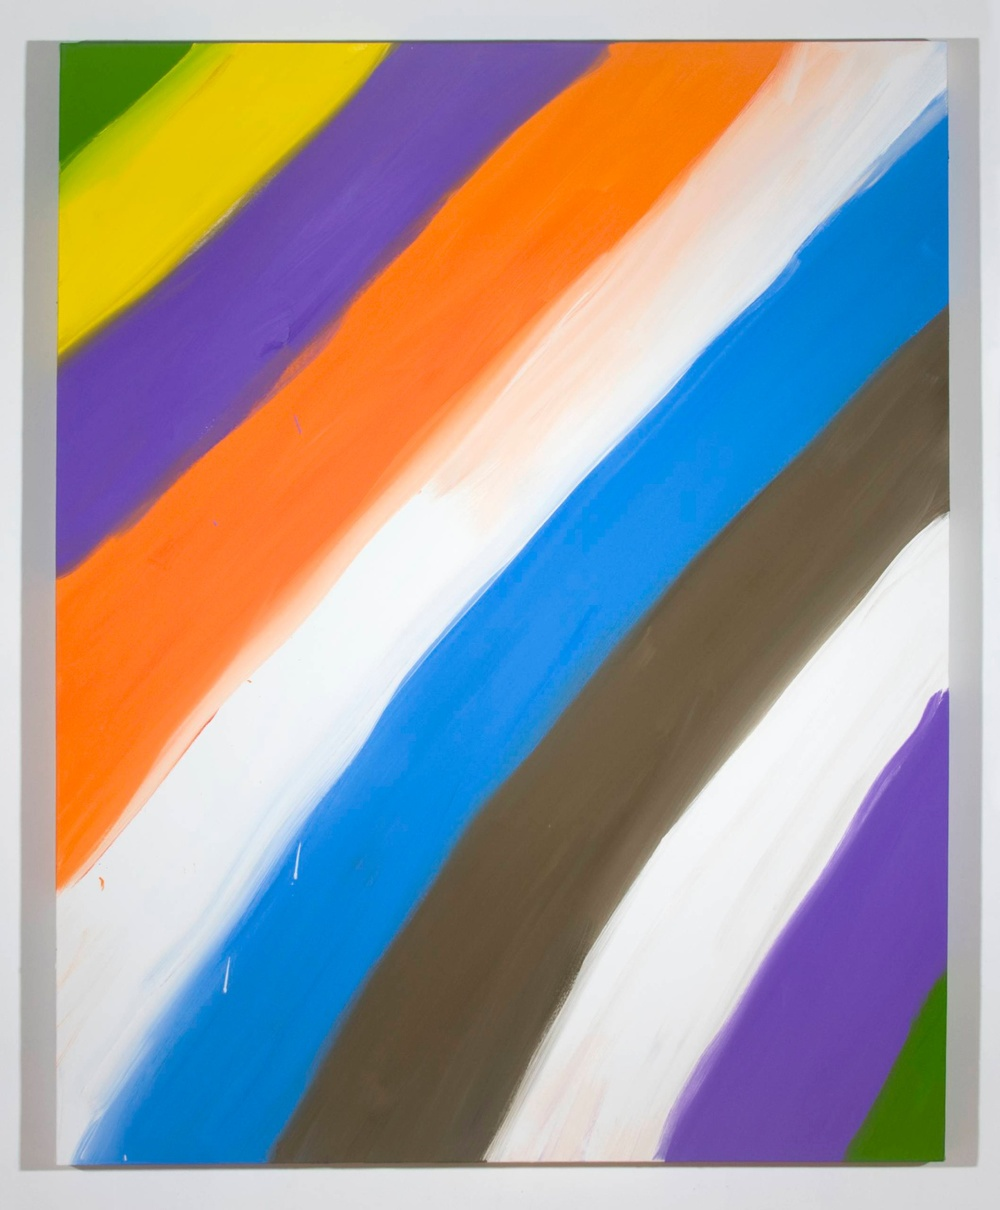 "Ann Craven Untitled (Stripe Green yellow purple 1-31-08) 2008 Oil on canvas 60"" x 48"""